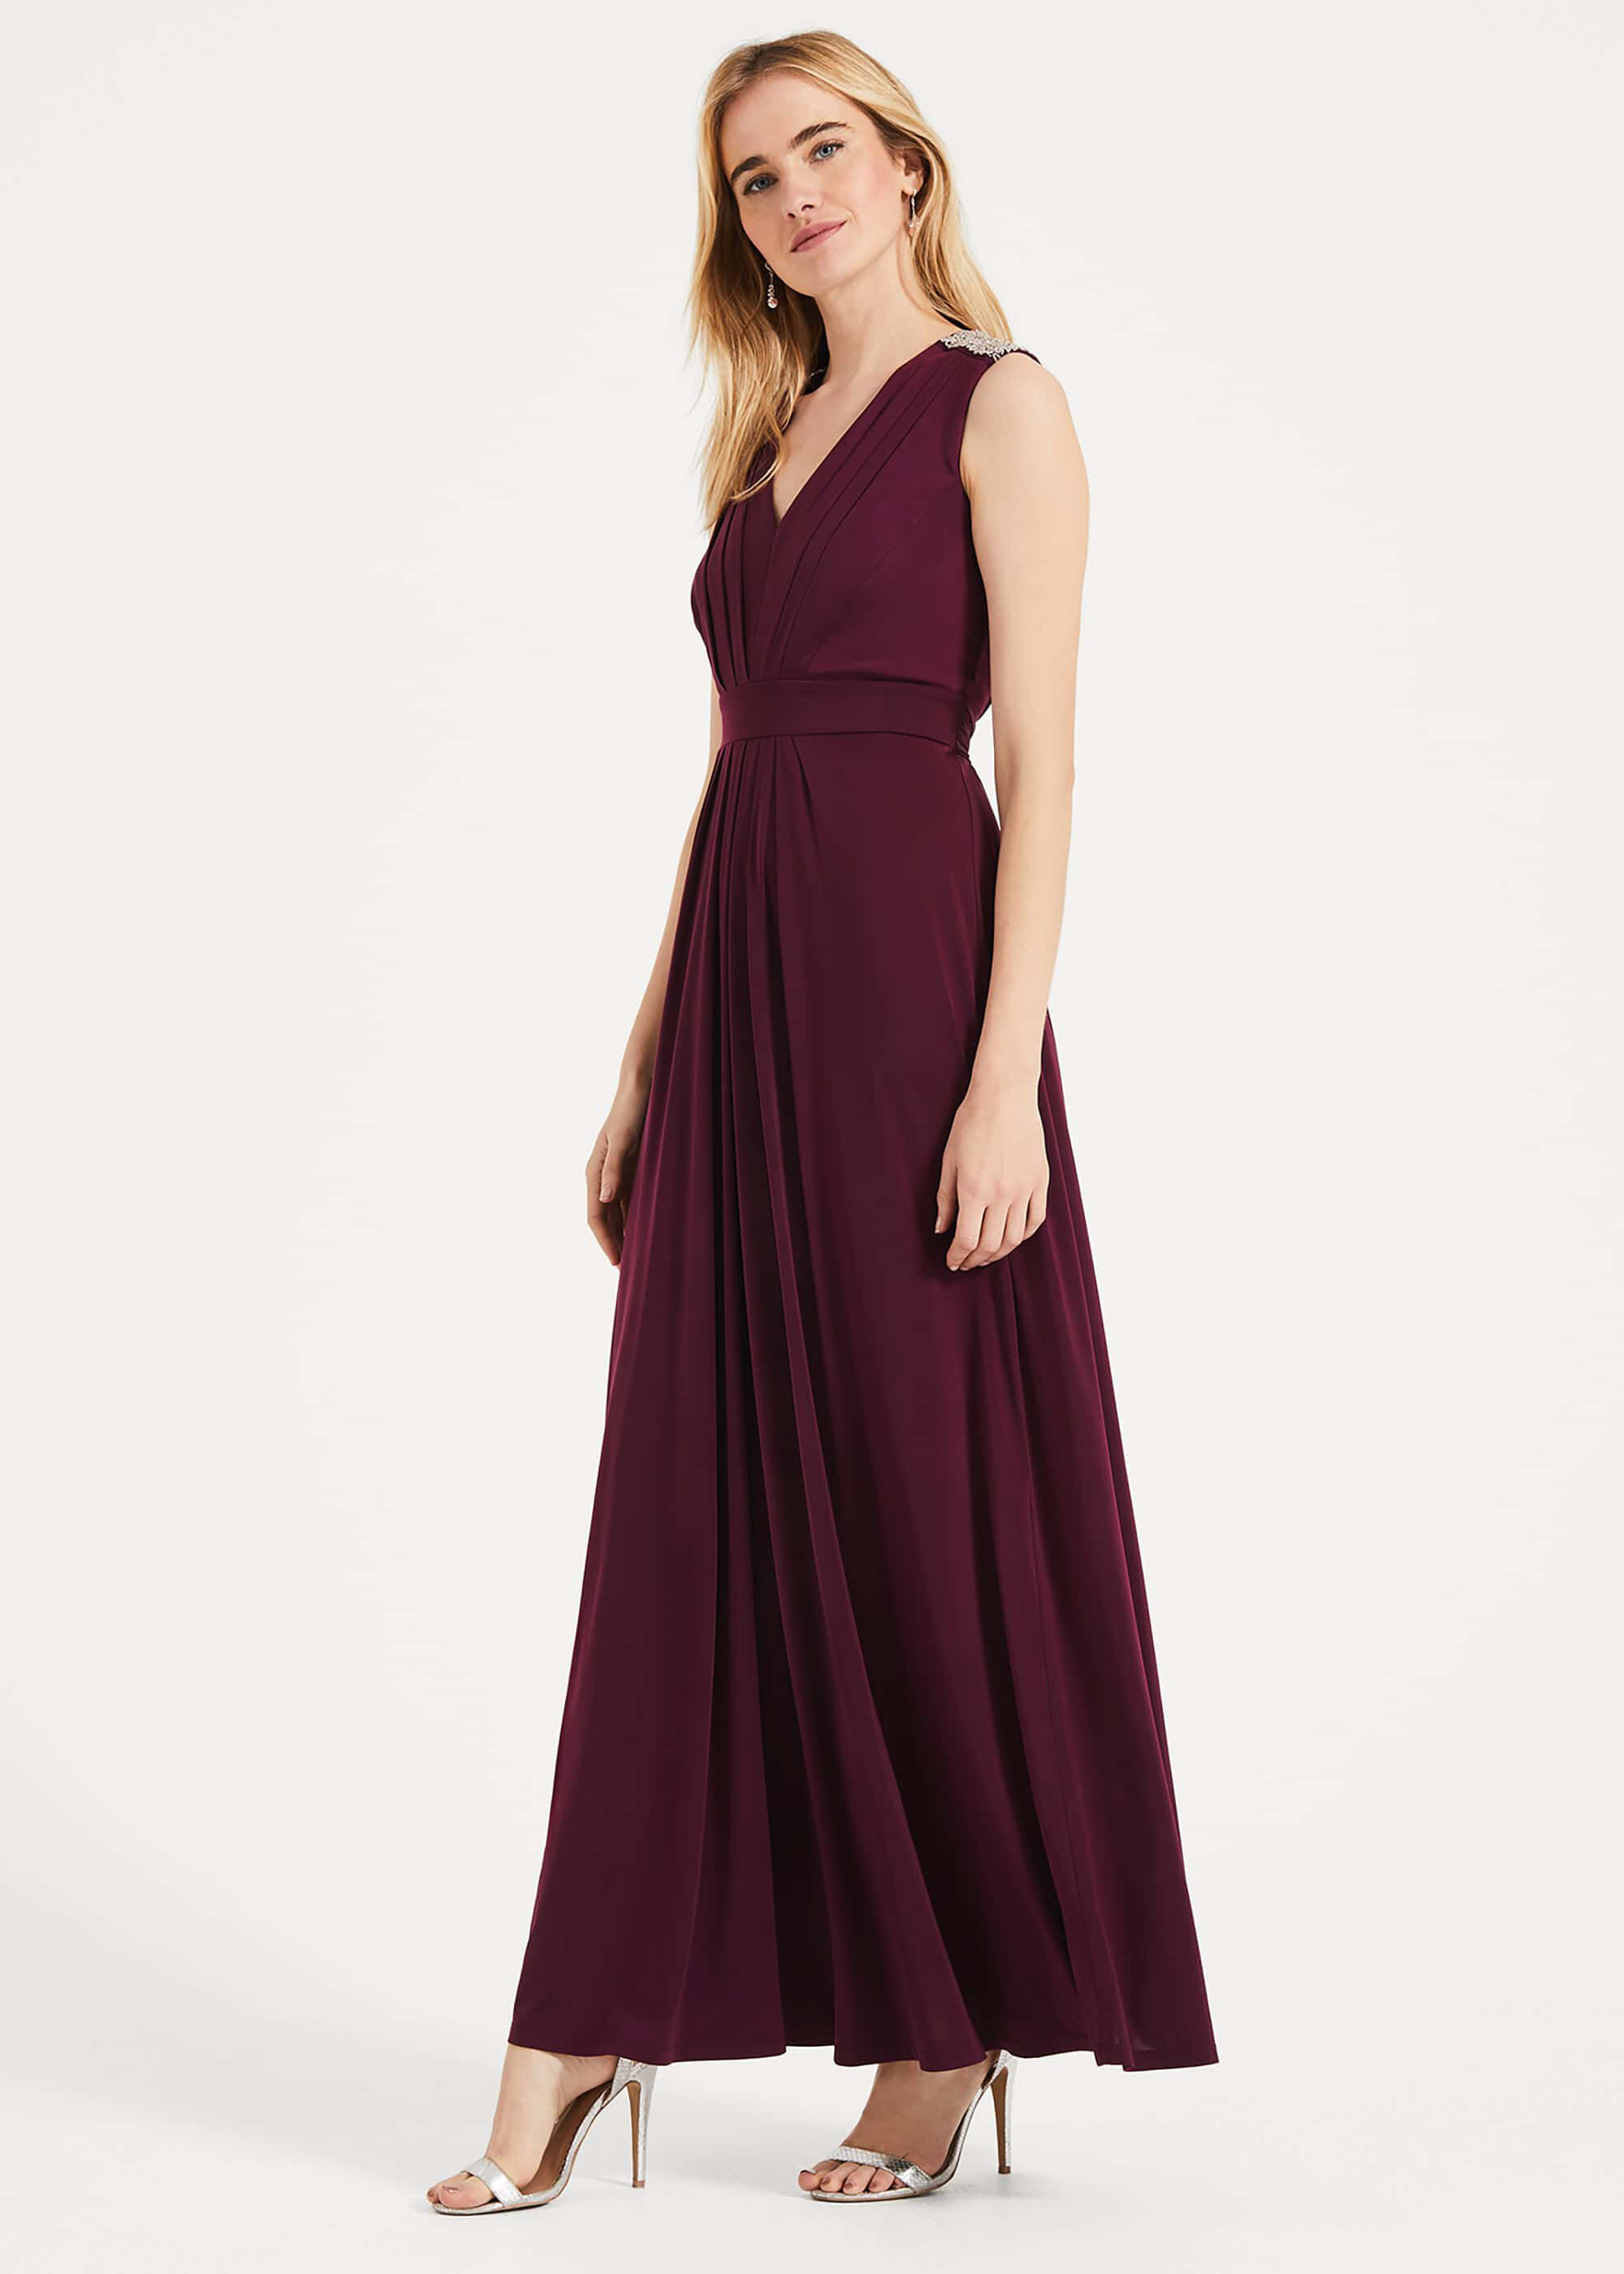 Phase Eight Tomasi Beaded Shoulder Dress, Red, Maxi, Occasion Dress